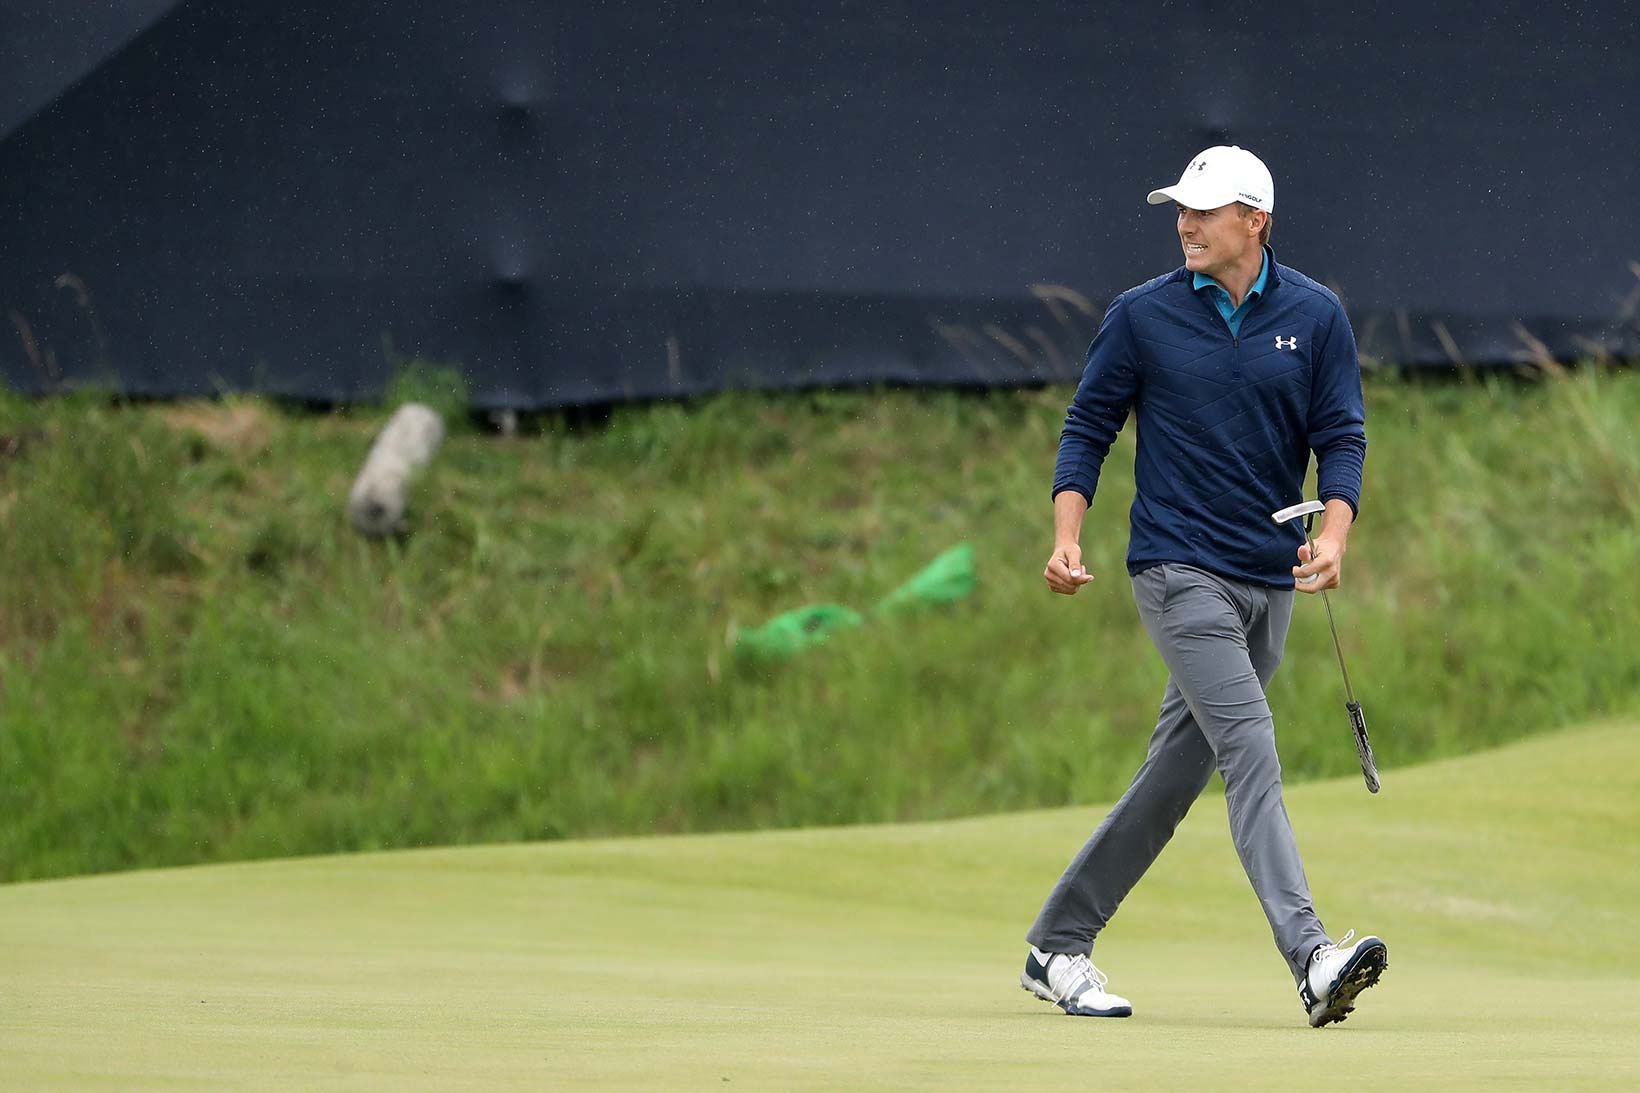 2017 Open Championship: Final Round - Jordan Celebrates Birdie Putt on No. 14